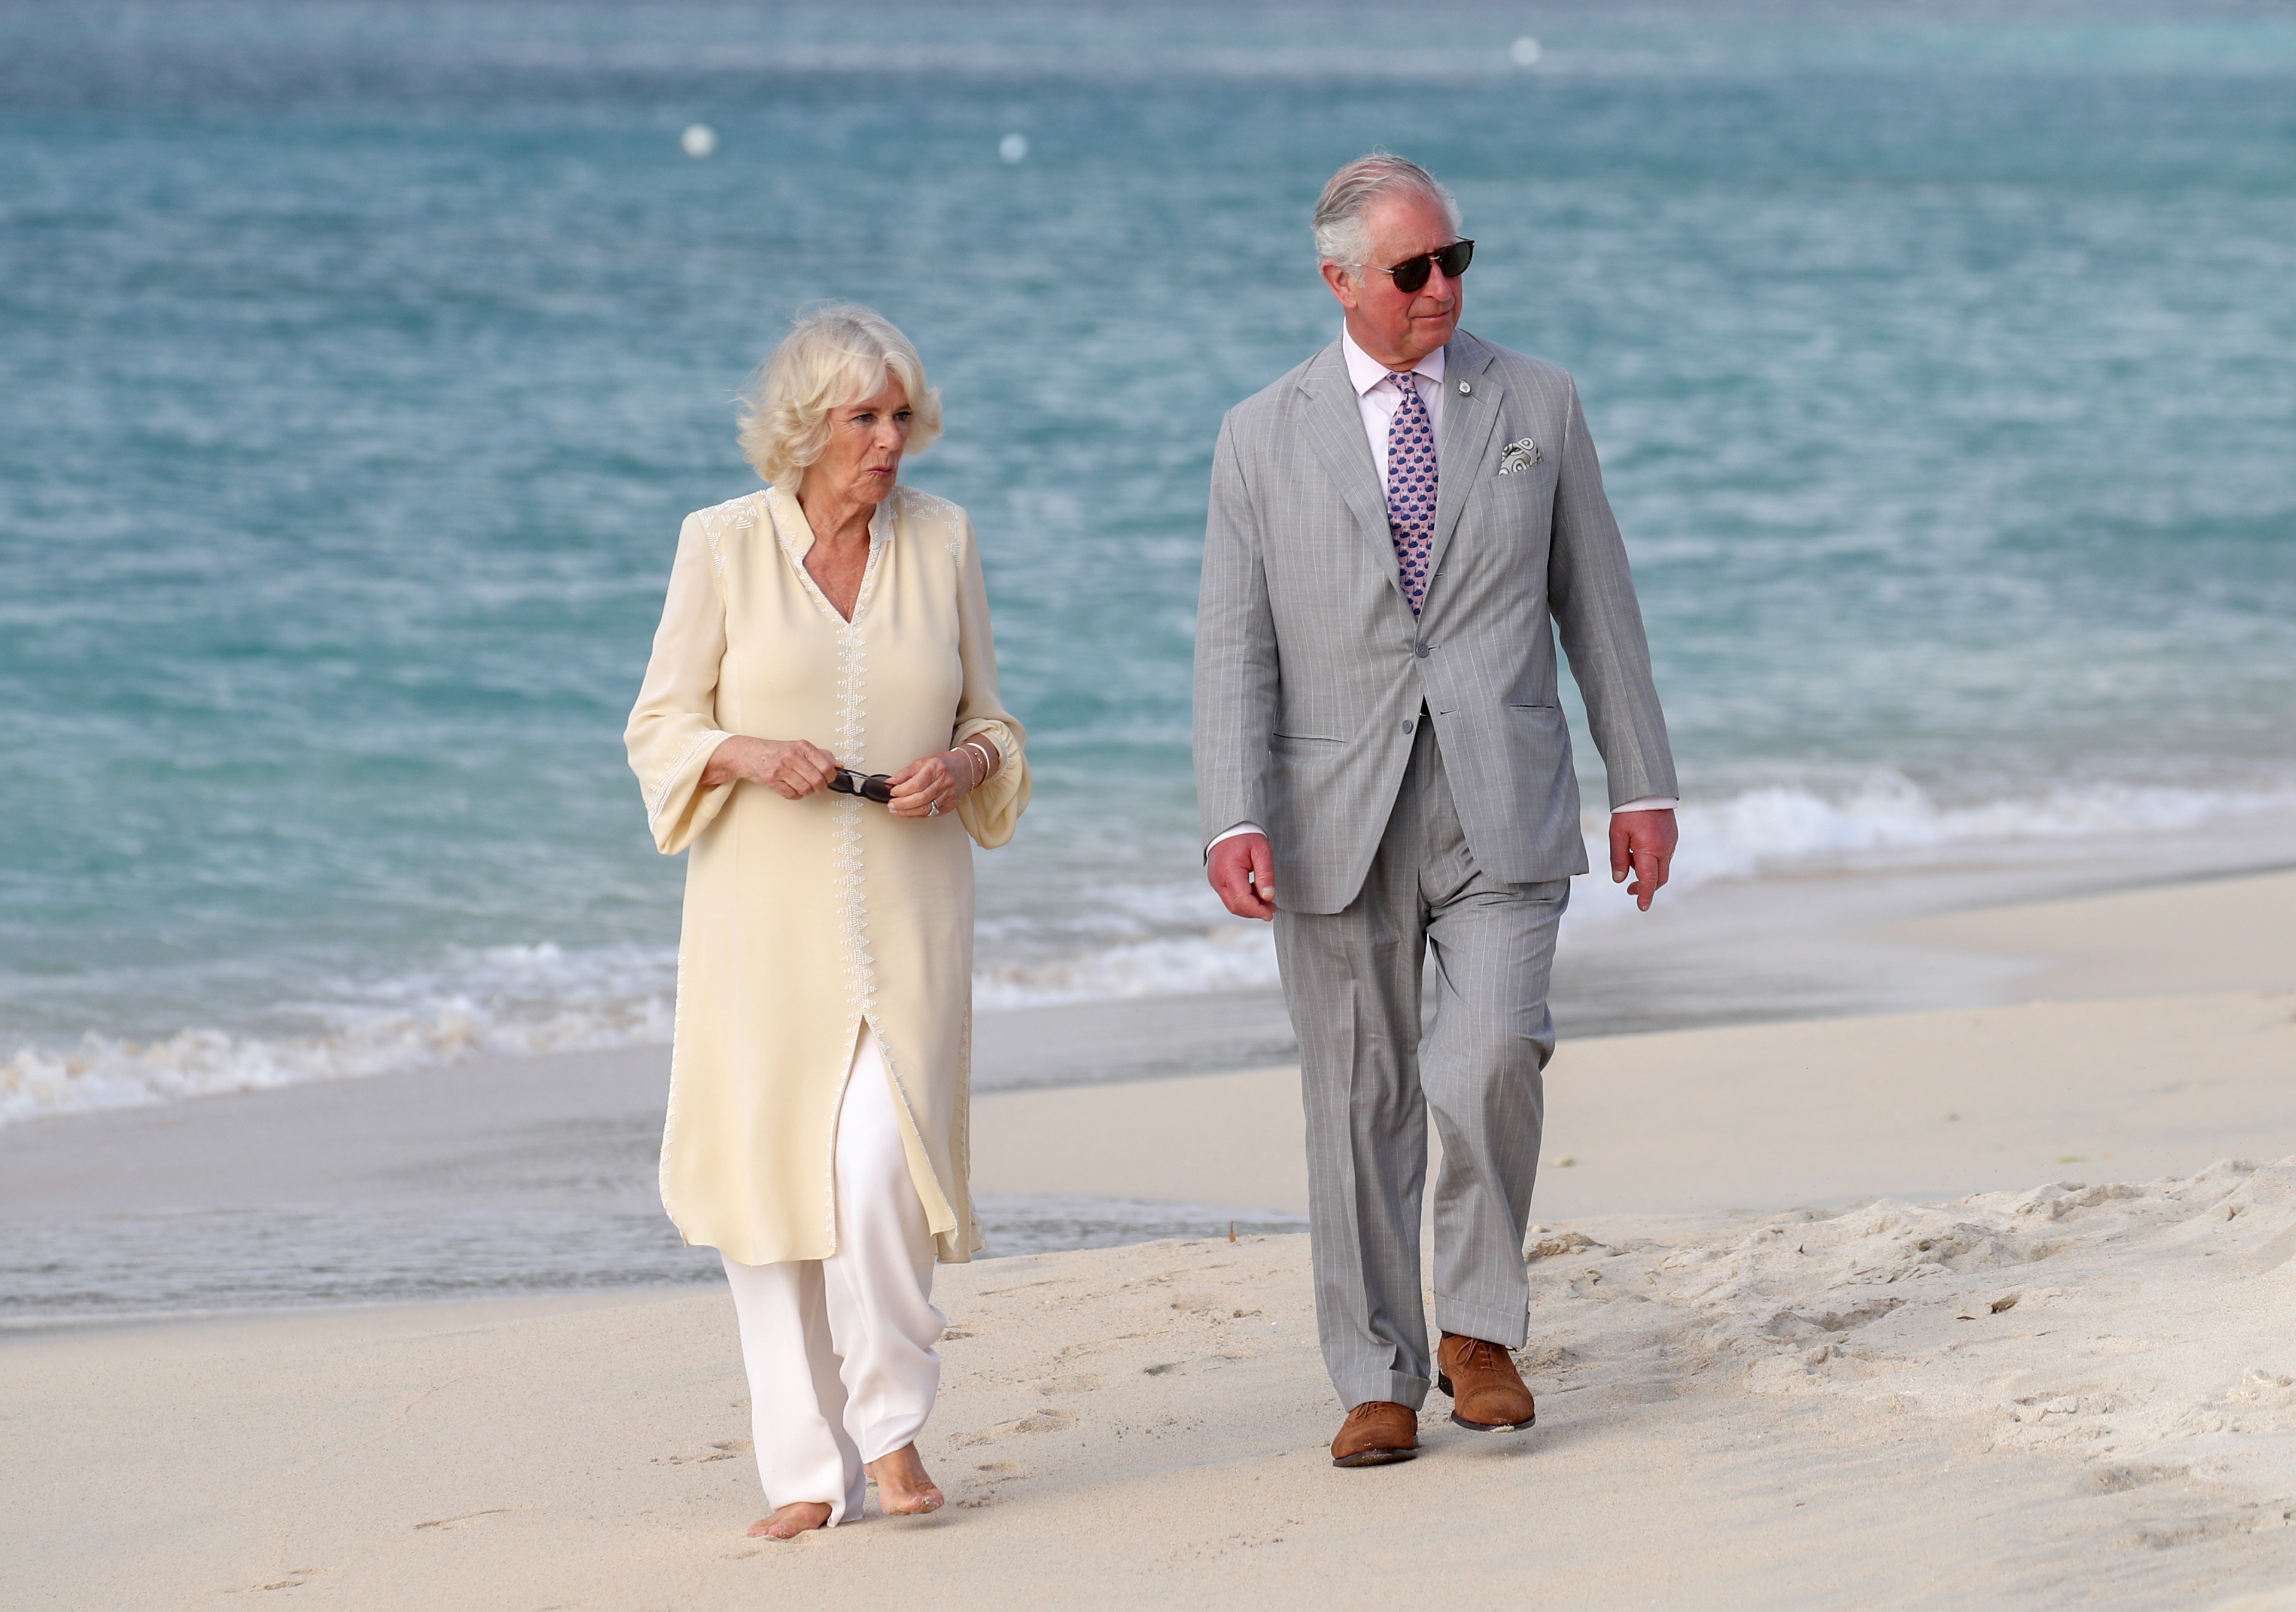 Prince Charles, Prince of Wales and Camilla, Duchess of Cornwall attend an engagement on the beach during their official visit to Grenada on March 23, 2019 in Saint George's, Grenada. (Photo by Chris Jackson/Getty Images,)